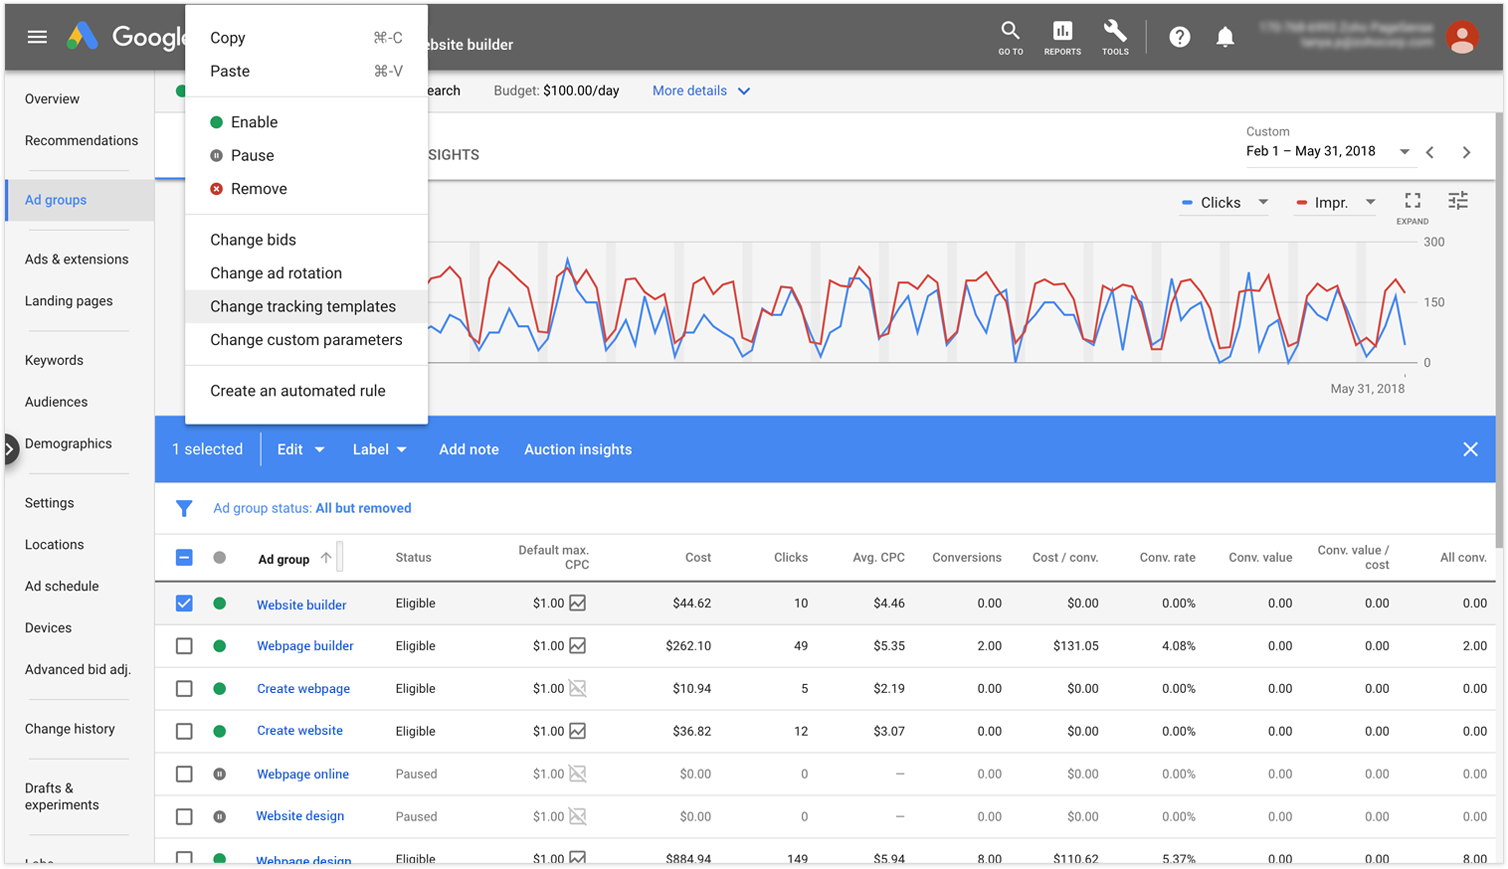 Changing Tracking Template in Google Ads while Integrating with PageSense